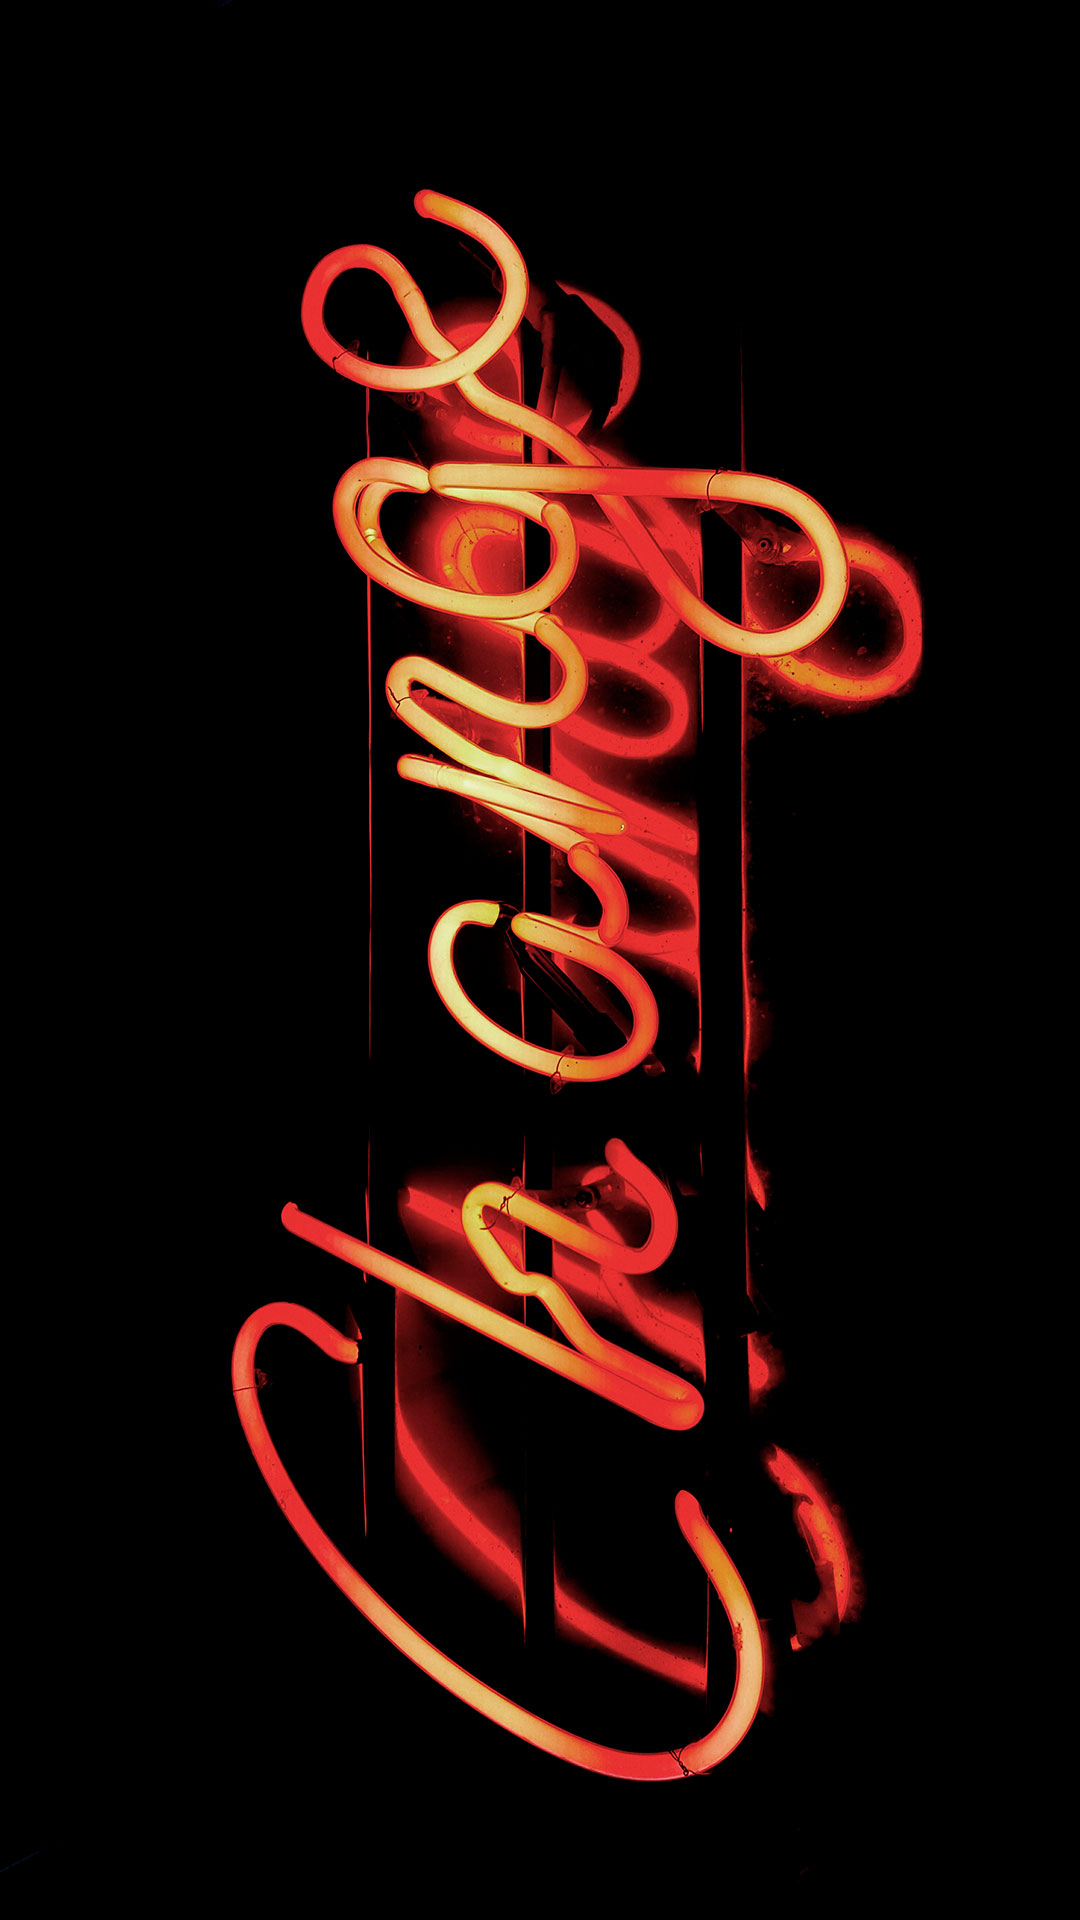 iPhone wallpaper neon sign change Fonds d'écran iPhone du 09/05/2018